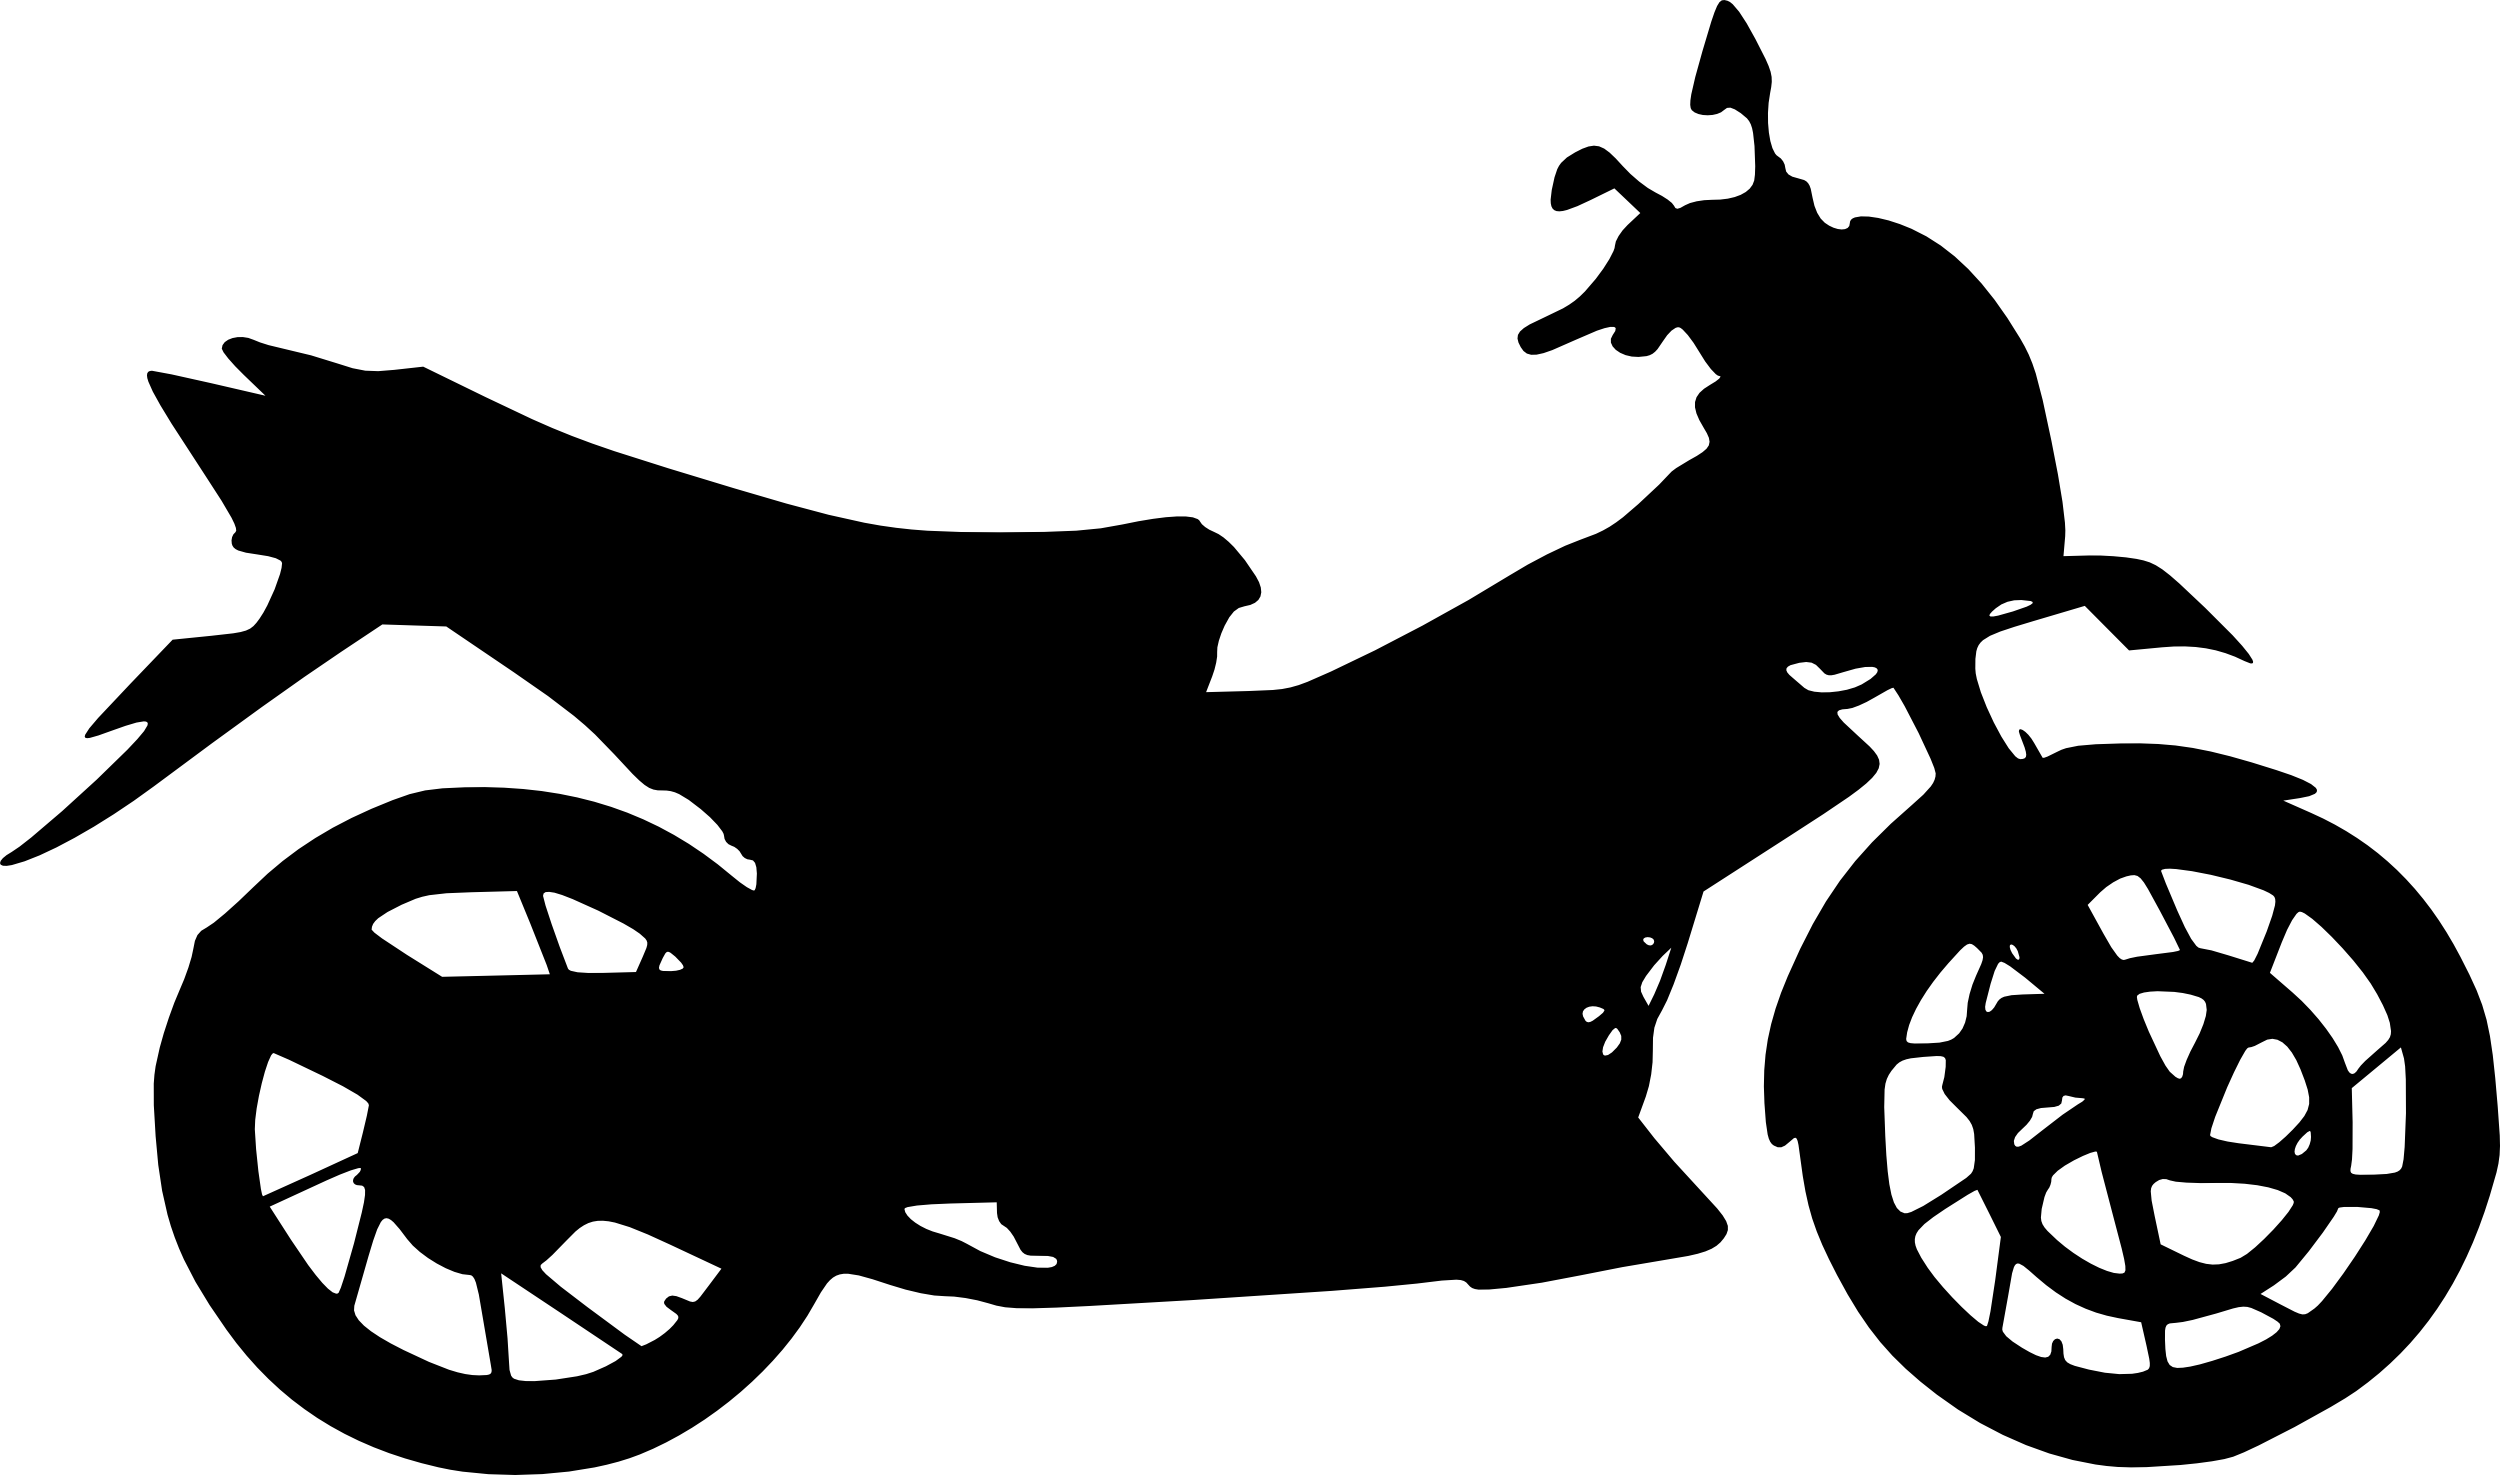 Dog on motorcycle clipart. Easy drawing at getdrawings